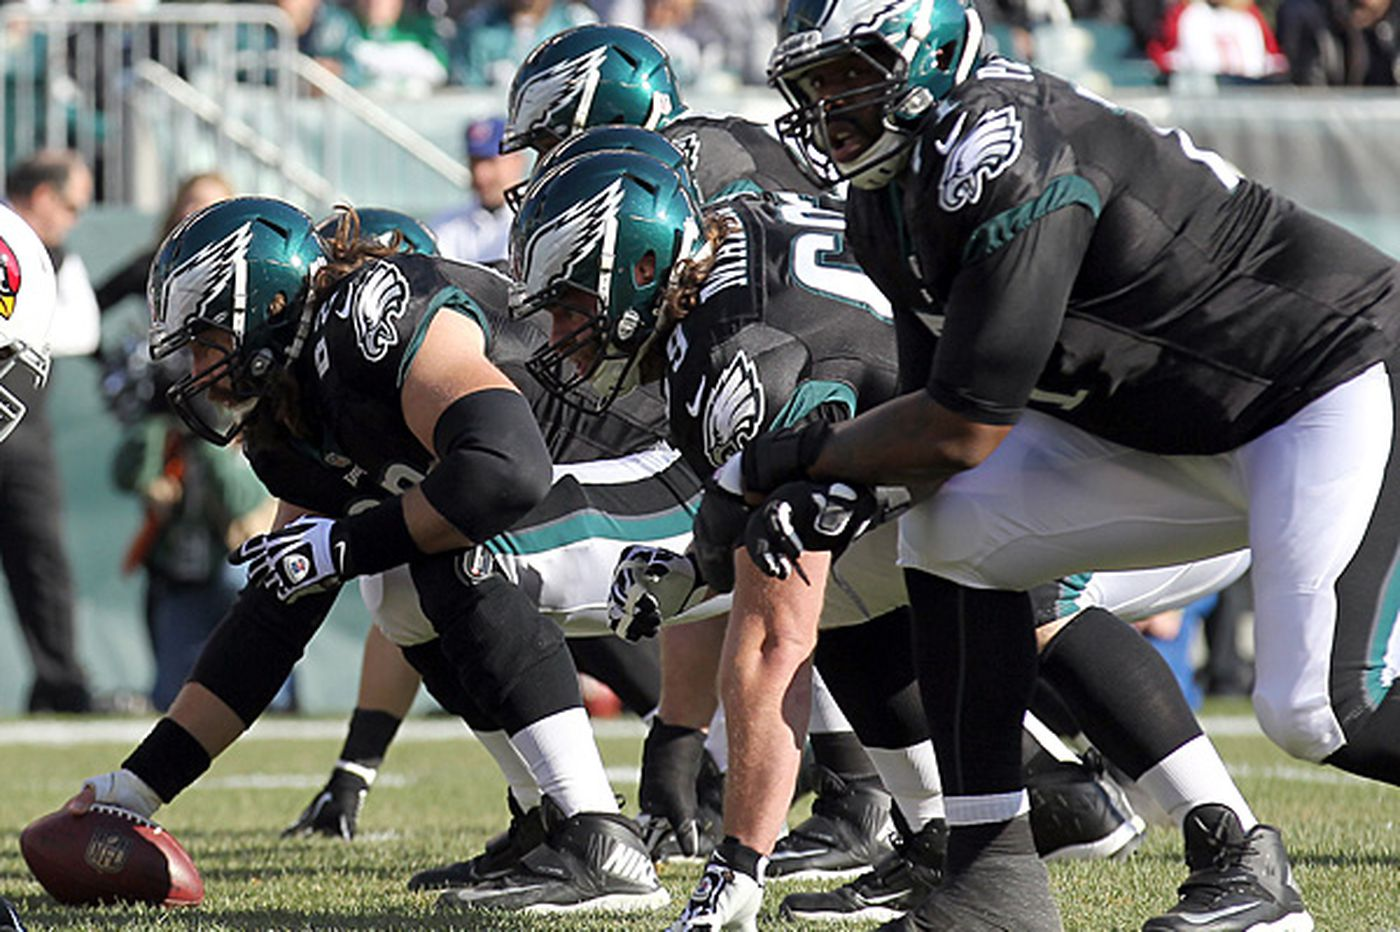 Eagles' offensive line is an explosive force